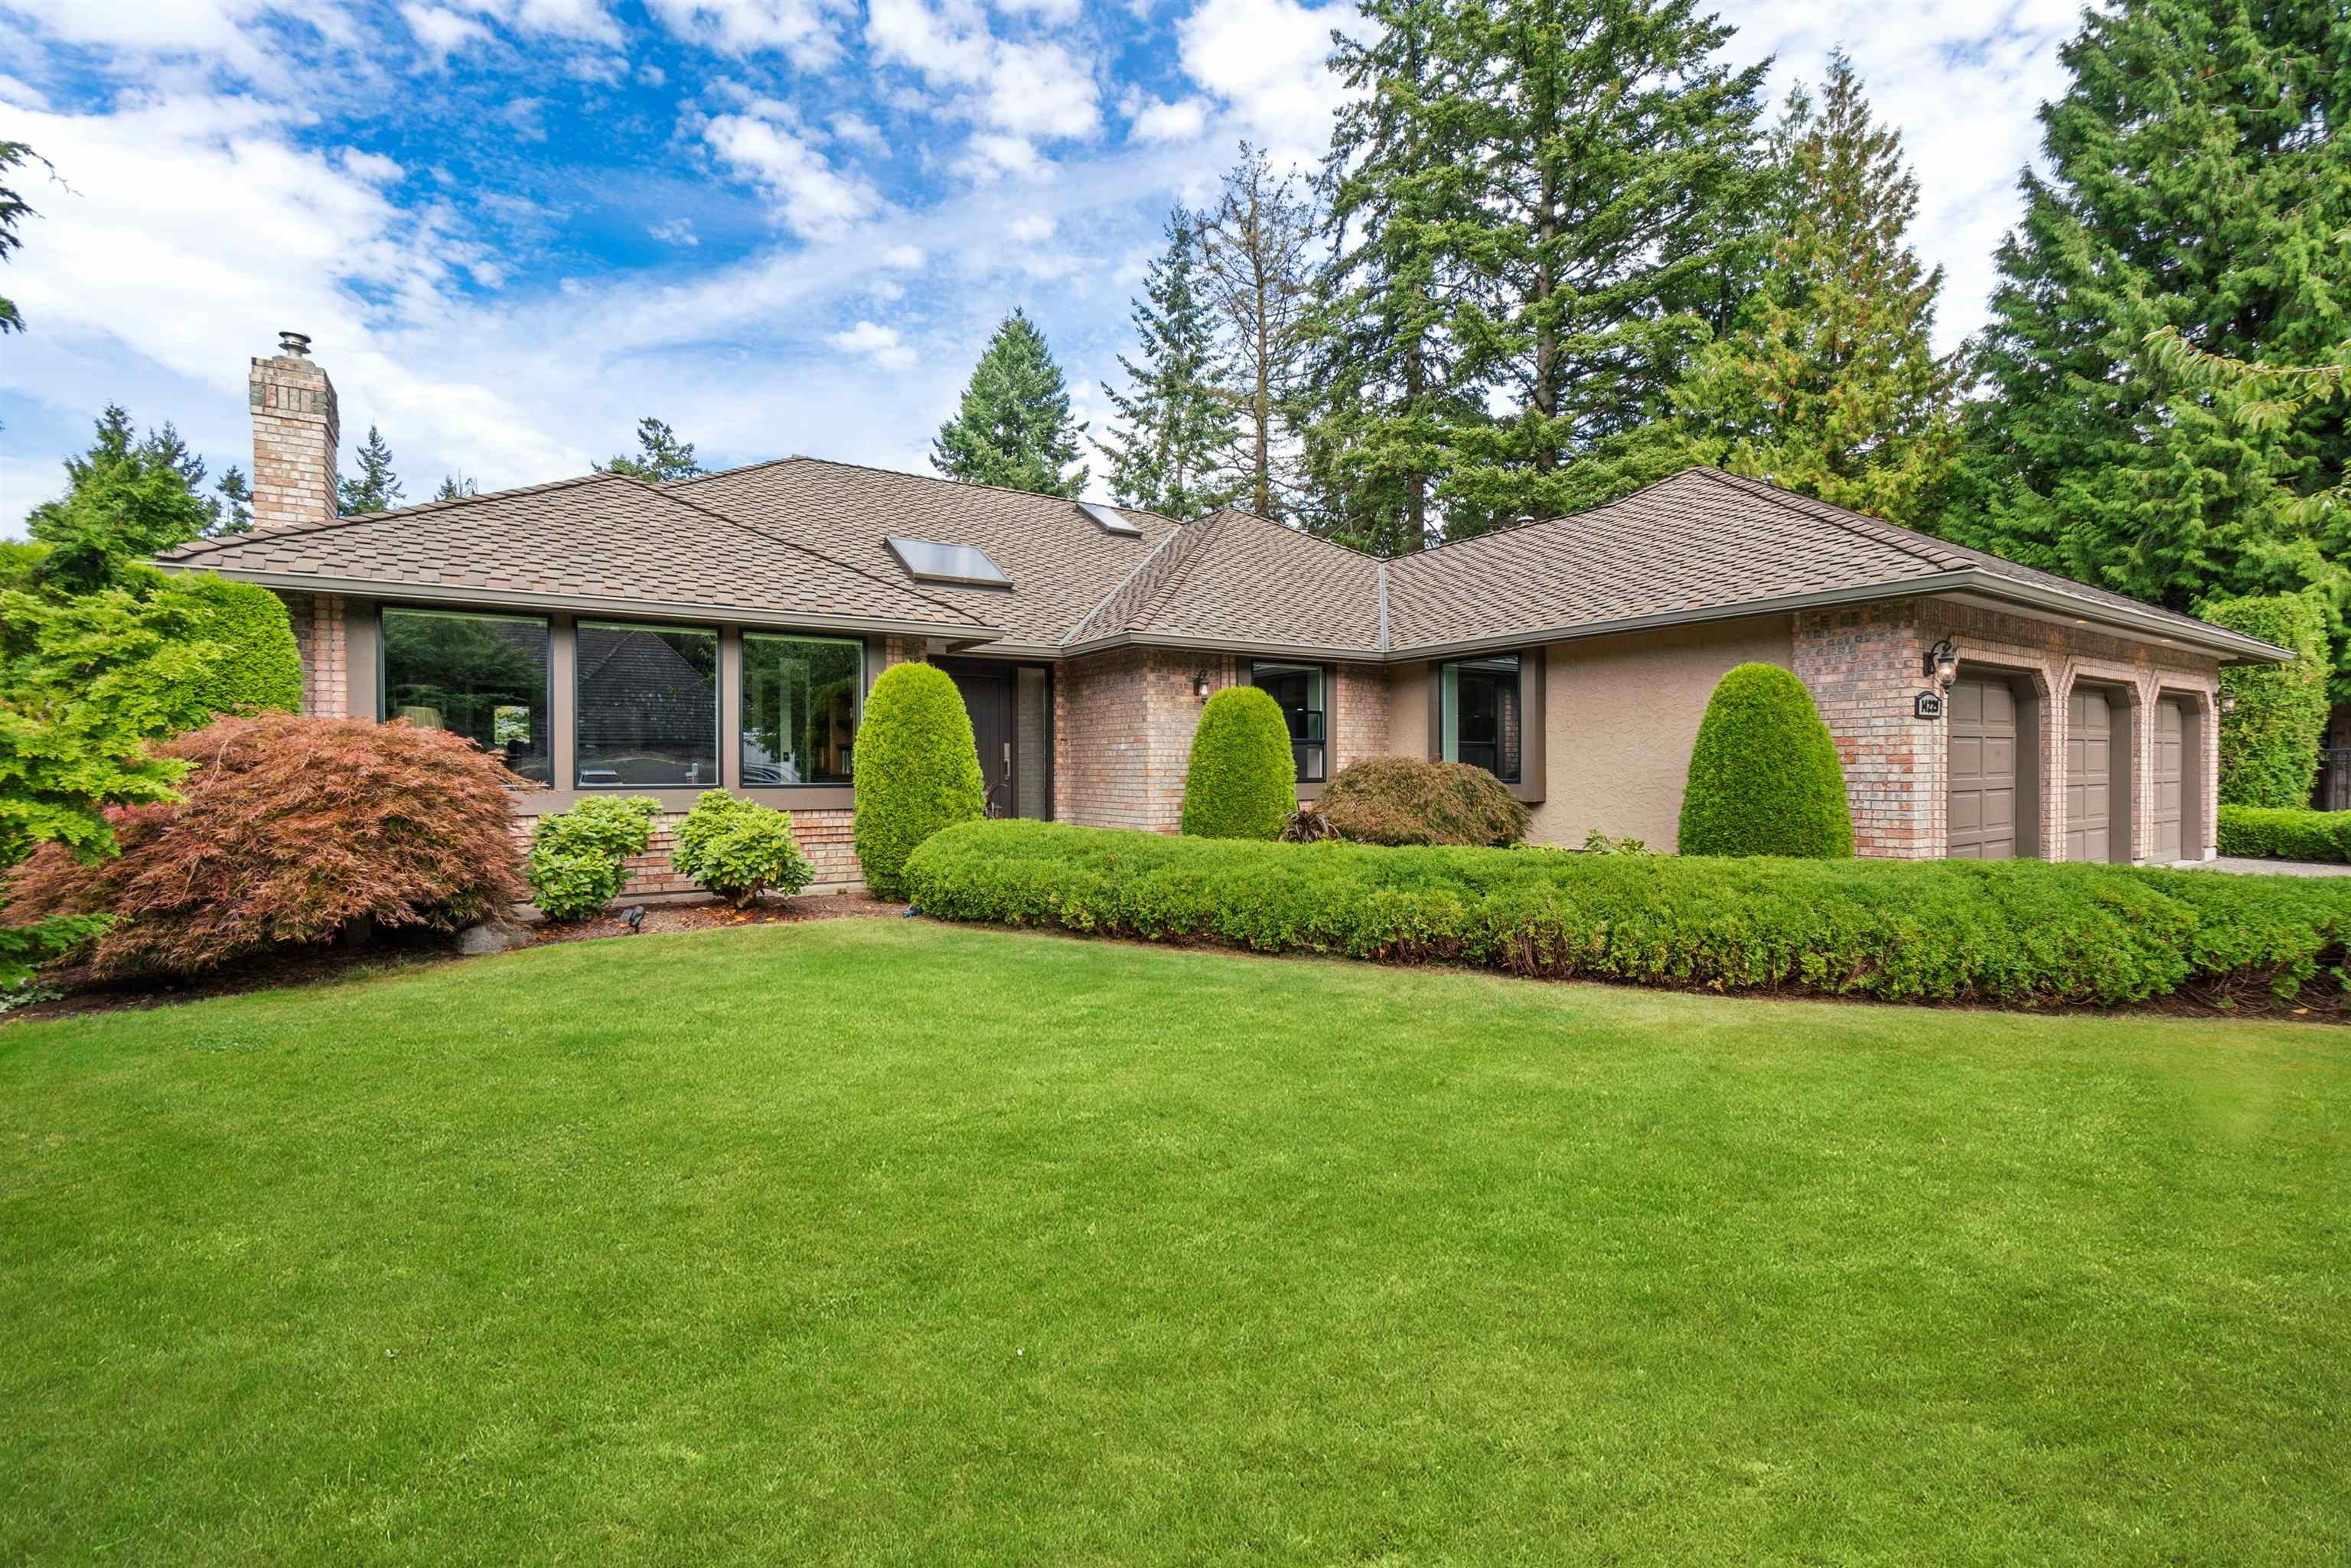 """Main Photo: 14229 31A Avenue in Surrey: Elgin Chantrell House for sale in """"Elgin Park"""" (South Surrey White Rock)  : MLS®# R2614209"""